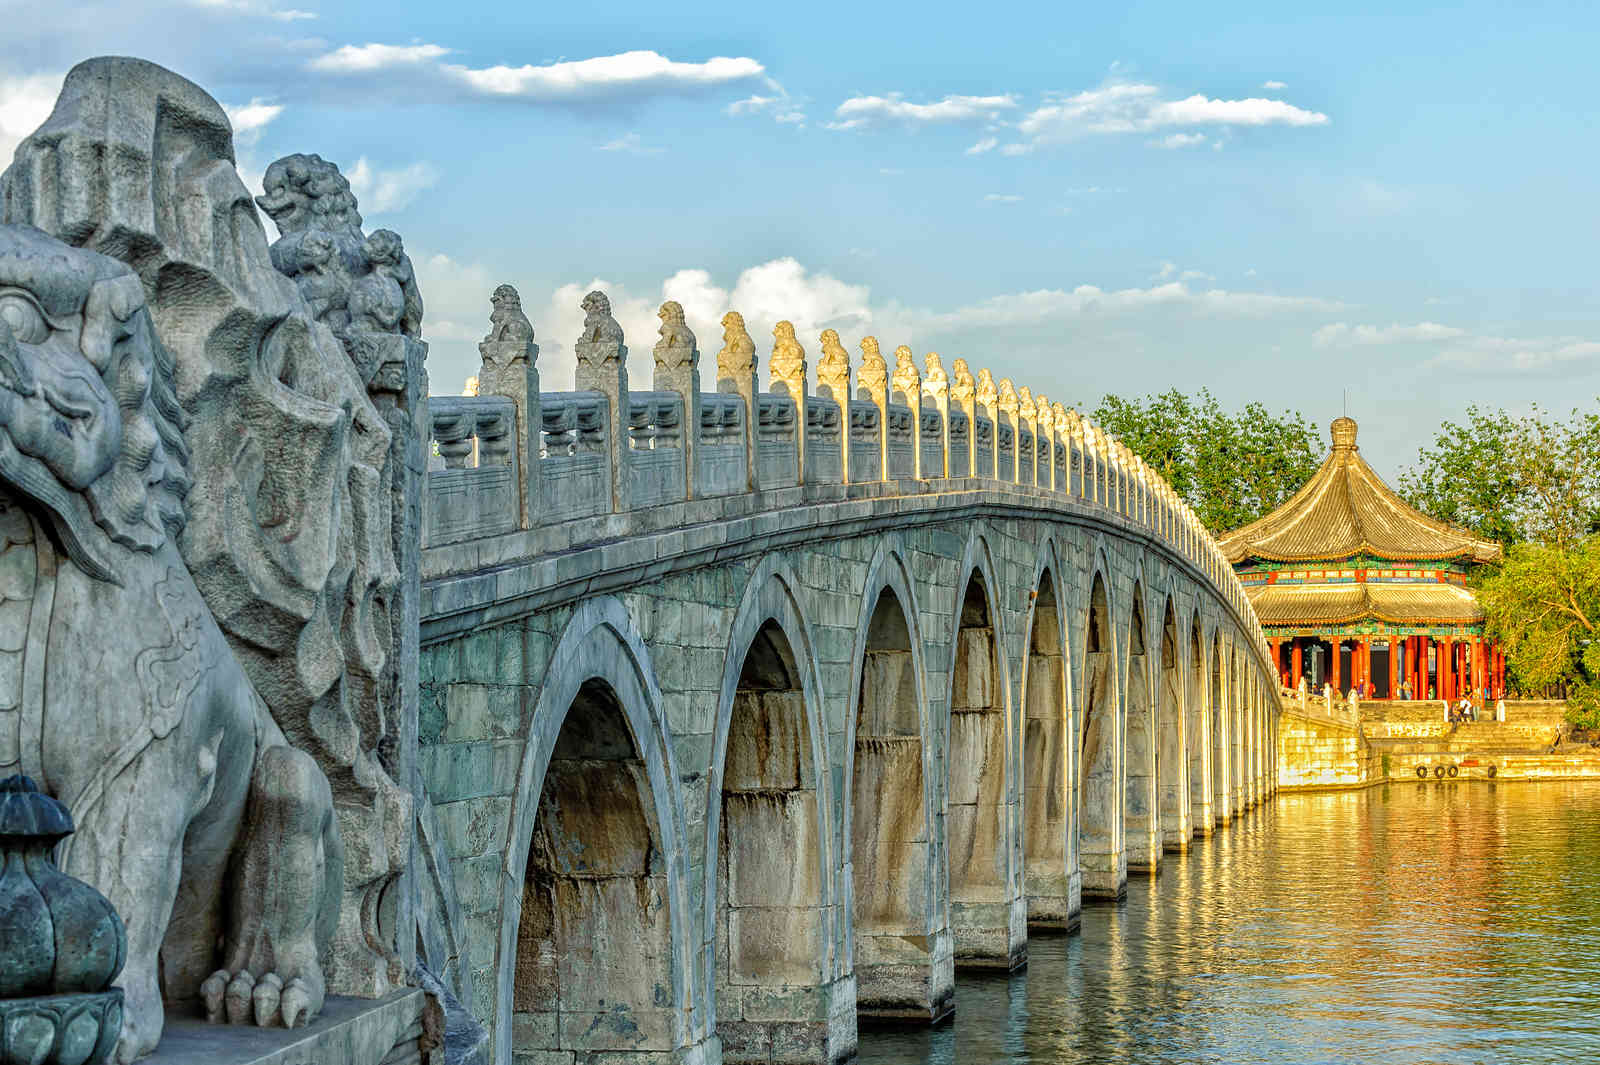 Summer Palace - 17-Arch Lion Bridge